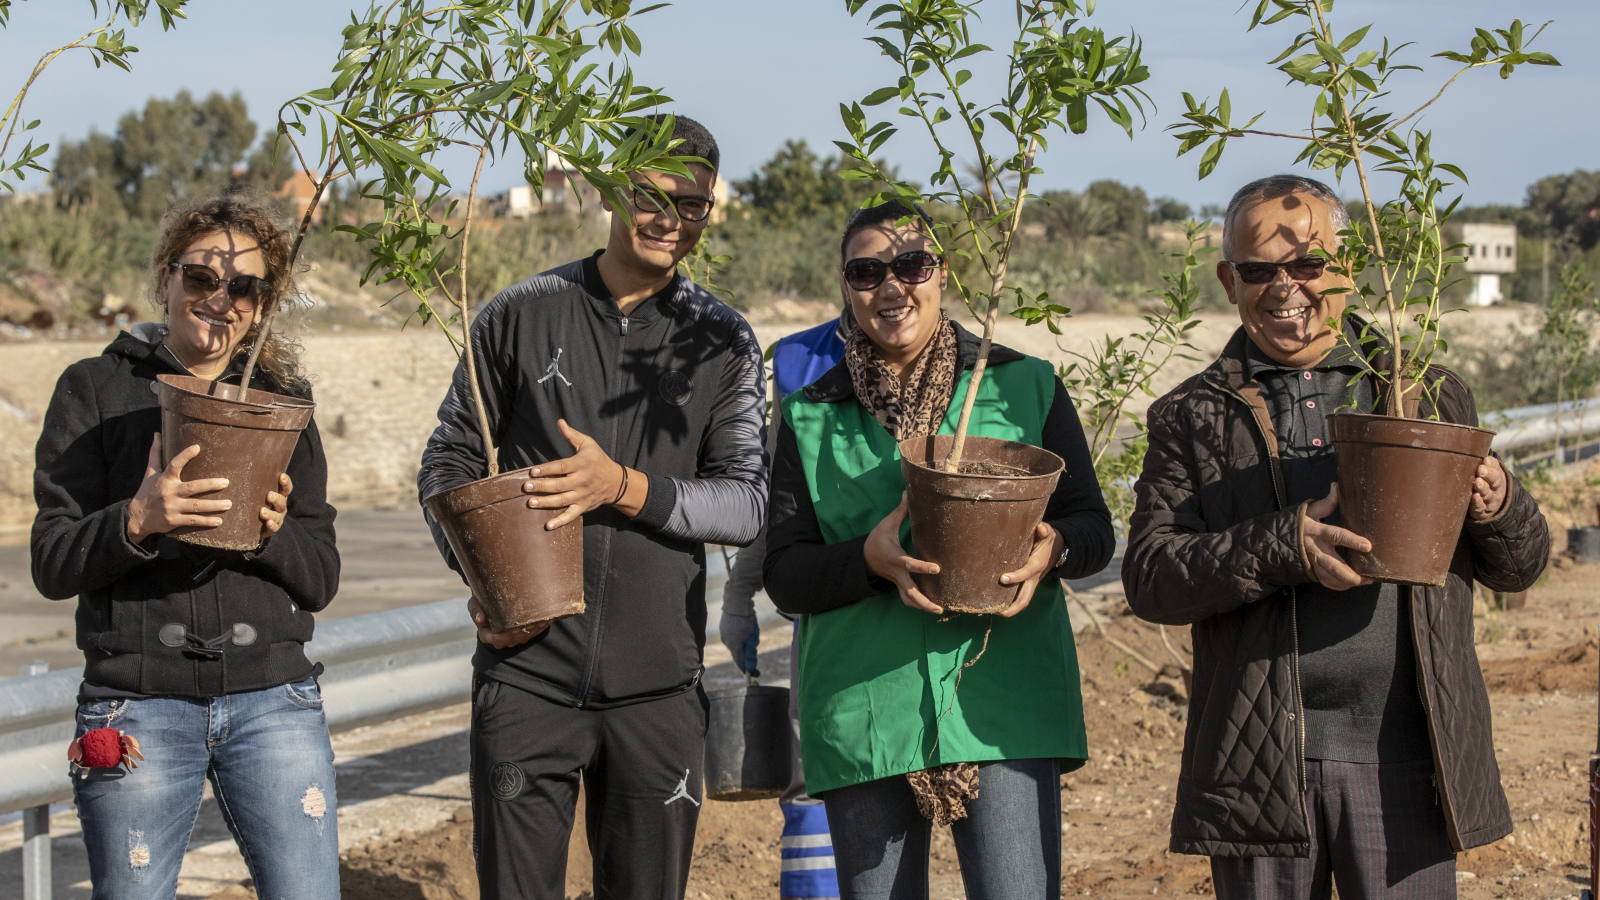 Clima-Med: Budding eco-warriors fighting climate change